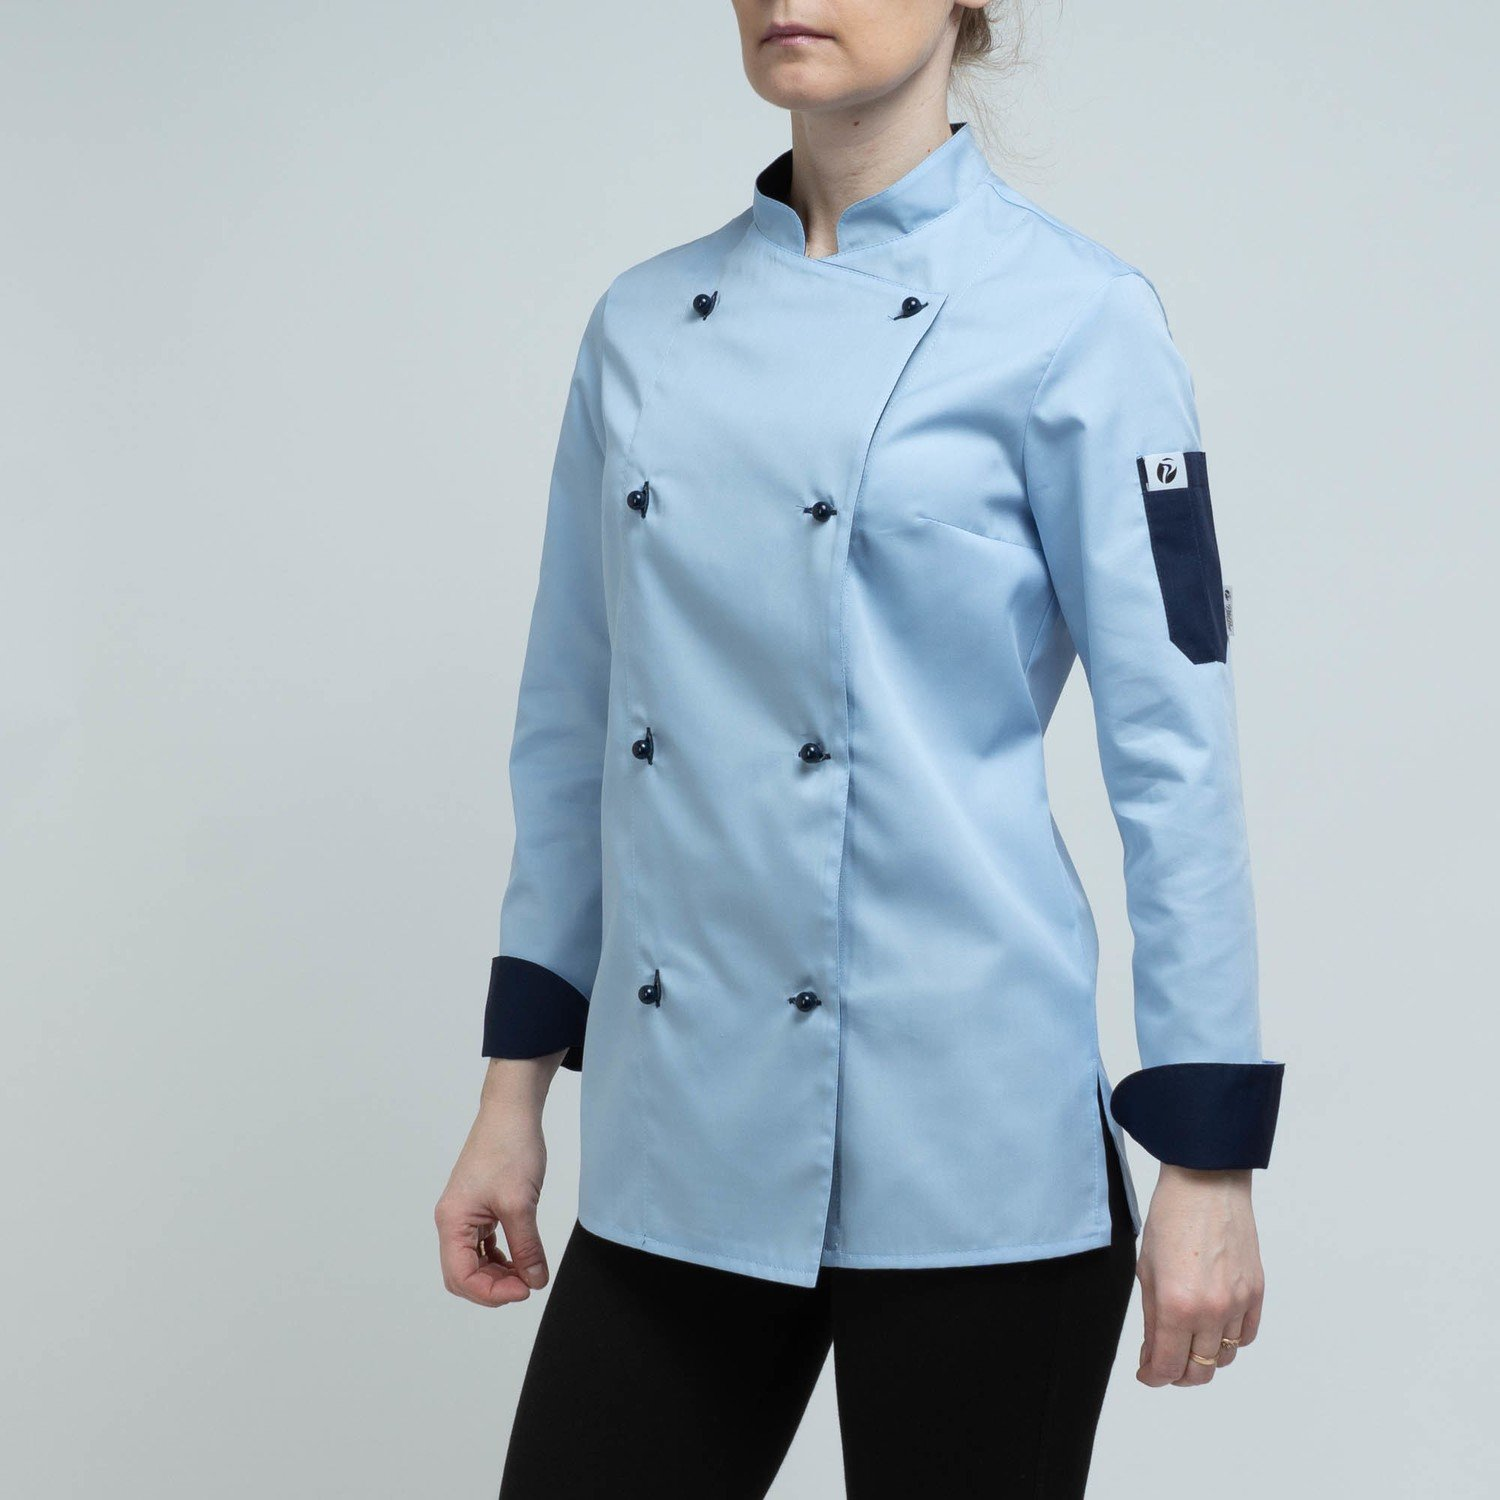 501BL2 - CHEF'S JACKET